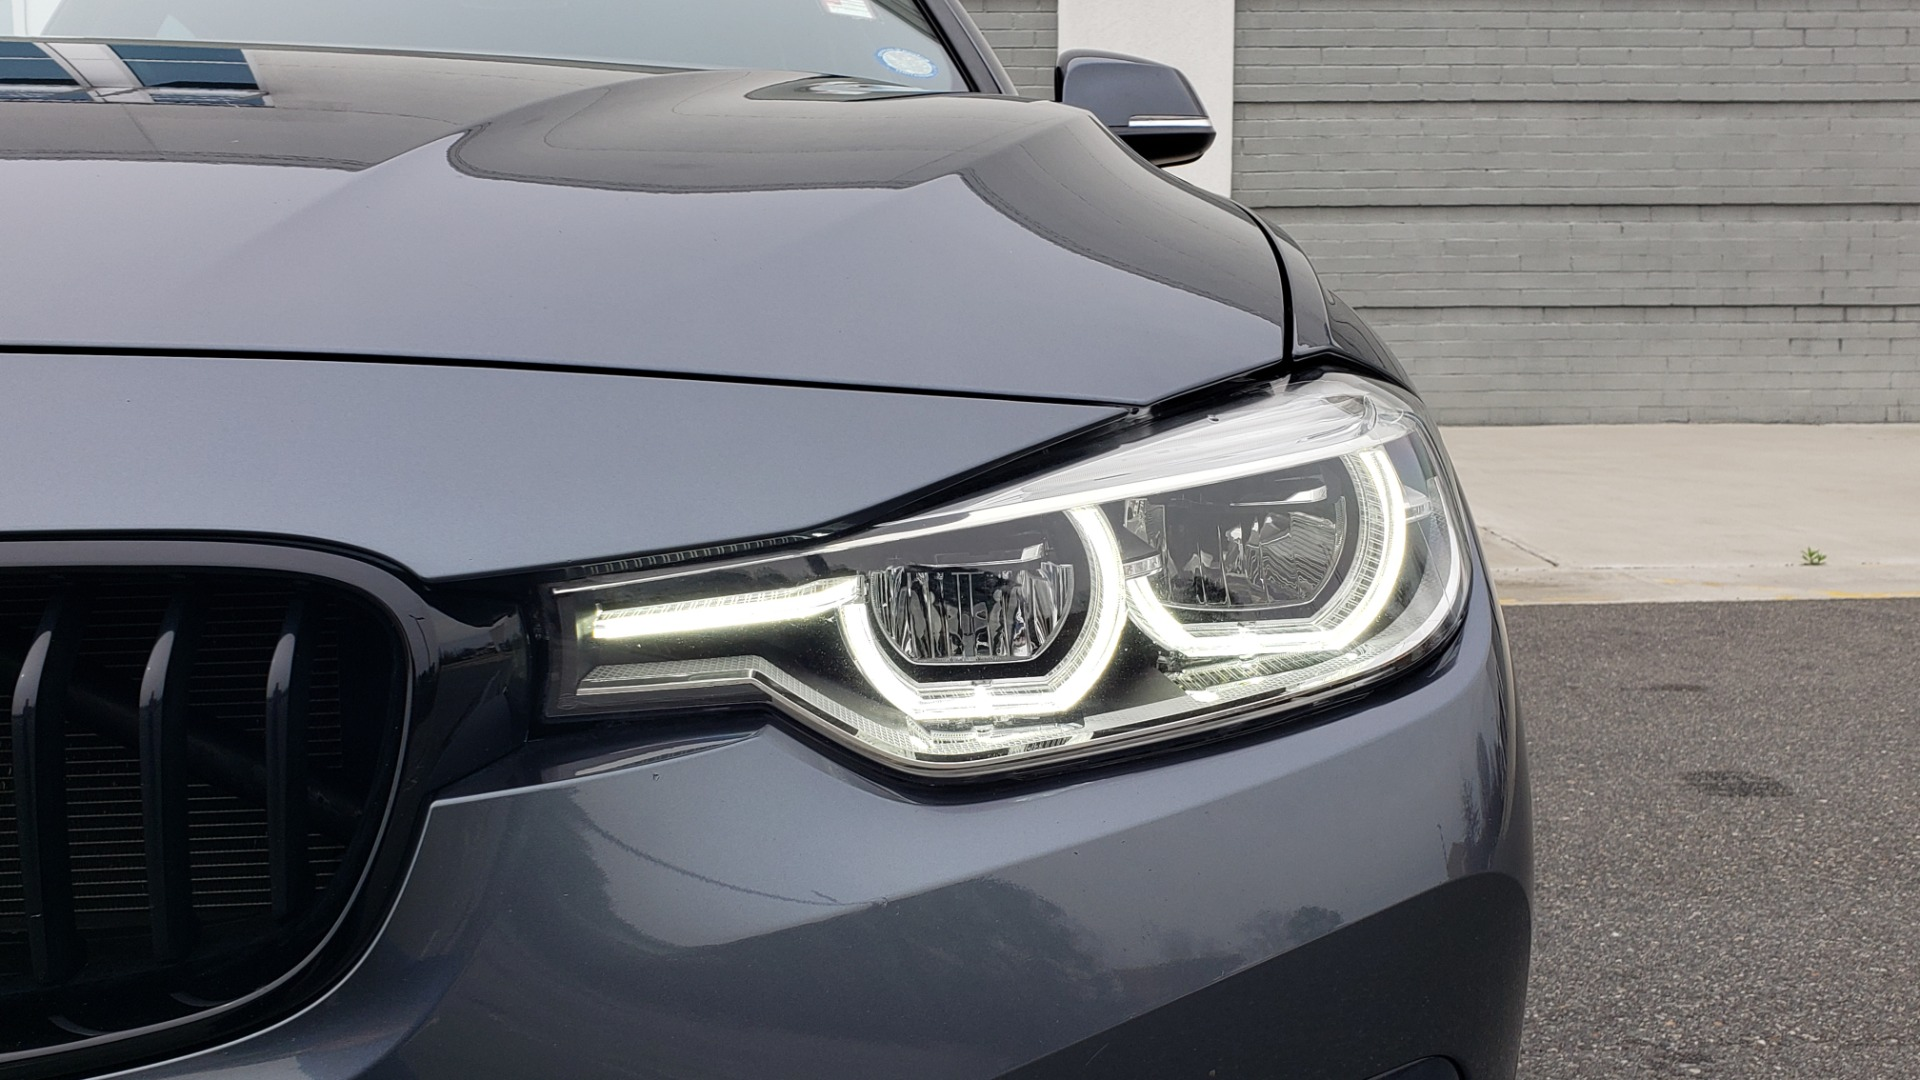 Used 2018 BMW 3 SERIES 330I XDRIVE PREMIUM / CONV PKG NAV / BLIND SPOT / HTD STS / REARVIEW for sale $22,695 at Formula Imports in Charlotte NC 28227 23